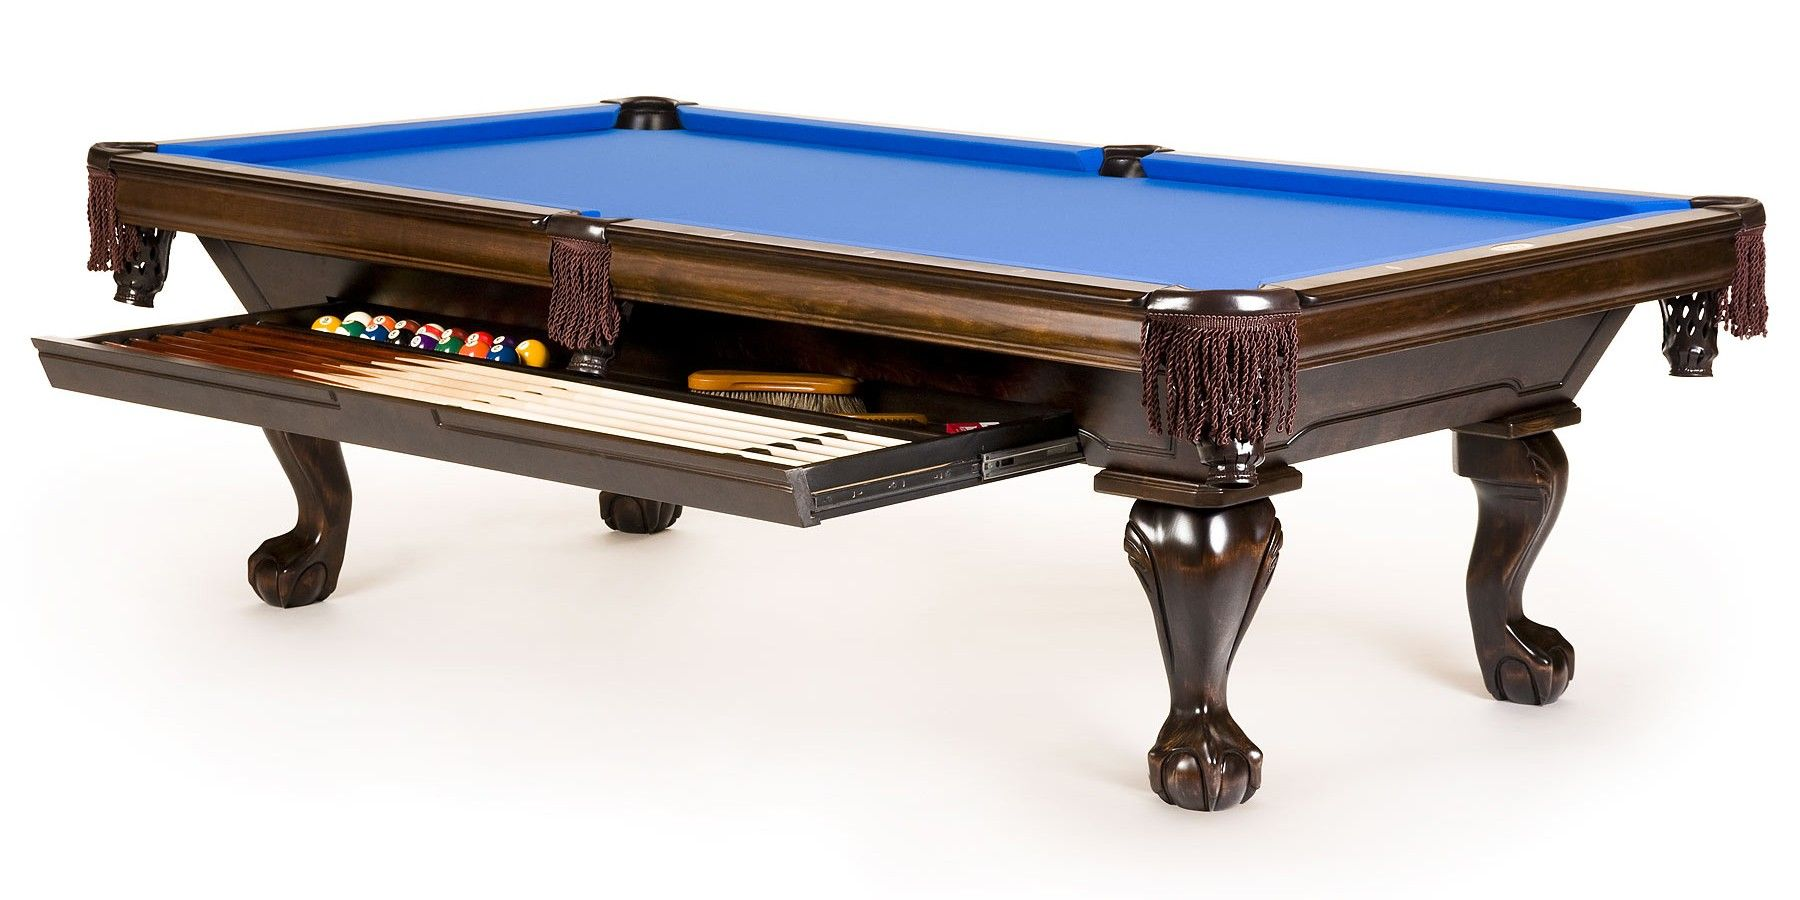 Benchmark Denver Billiards Table With Built In Storage For Cues Balls And Accessories We Need One Like This Pool Table Pool Table Cloth Pool Tables For Sale